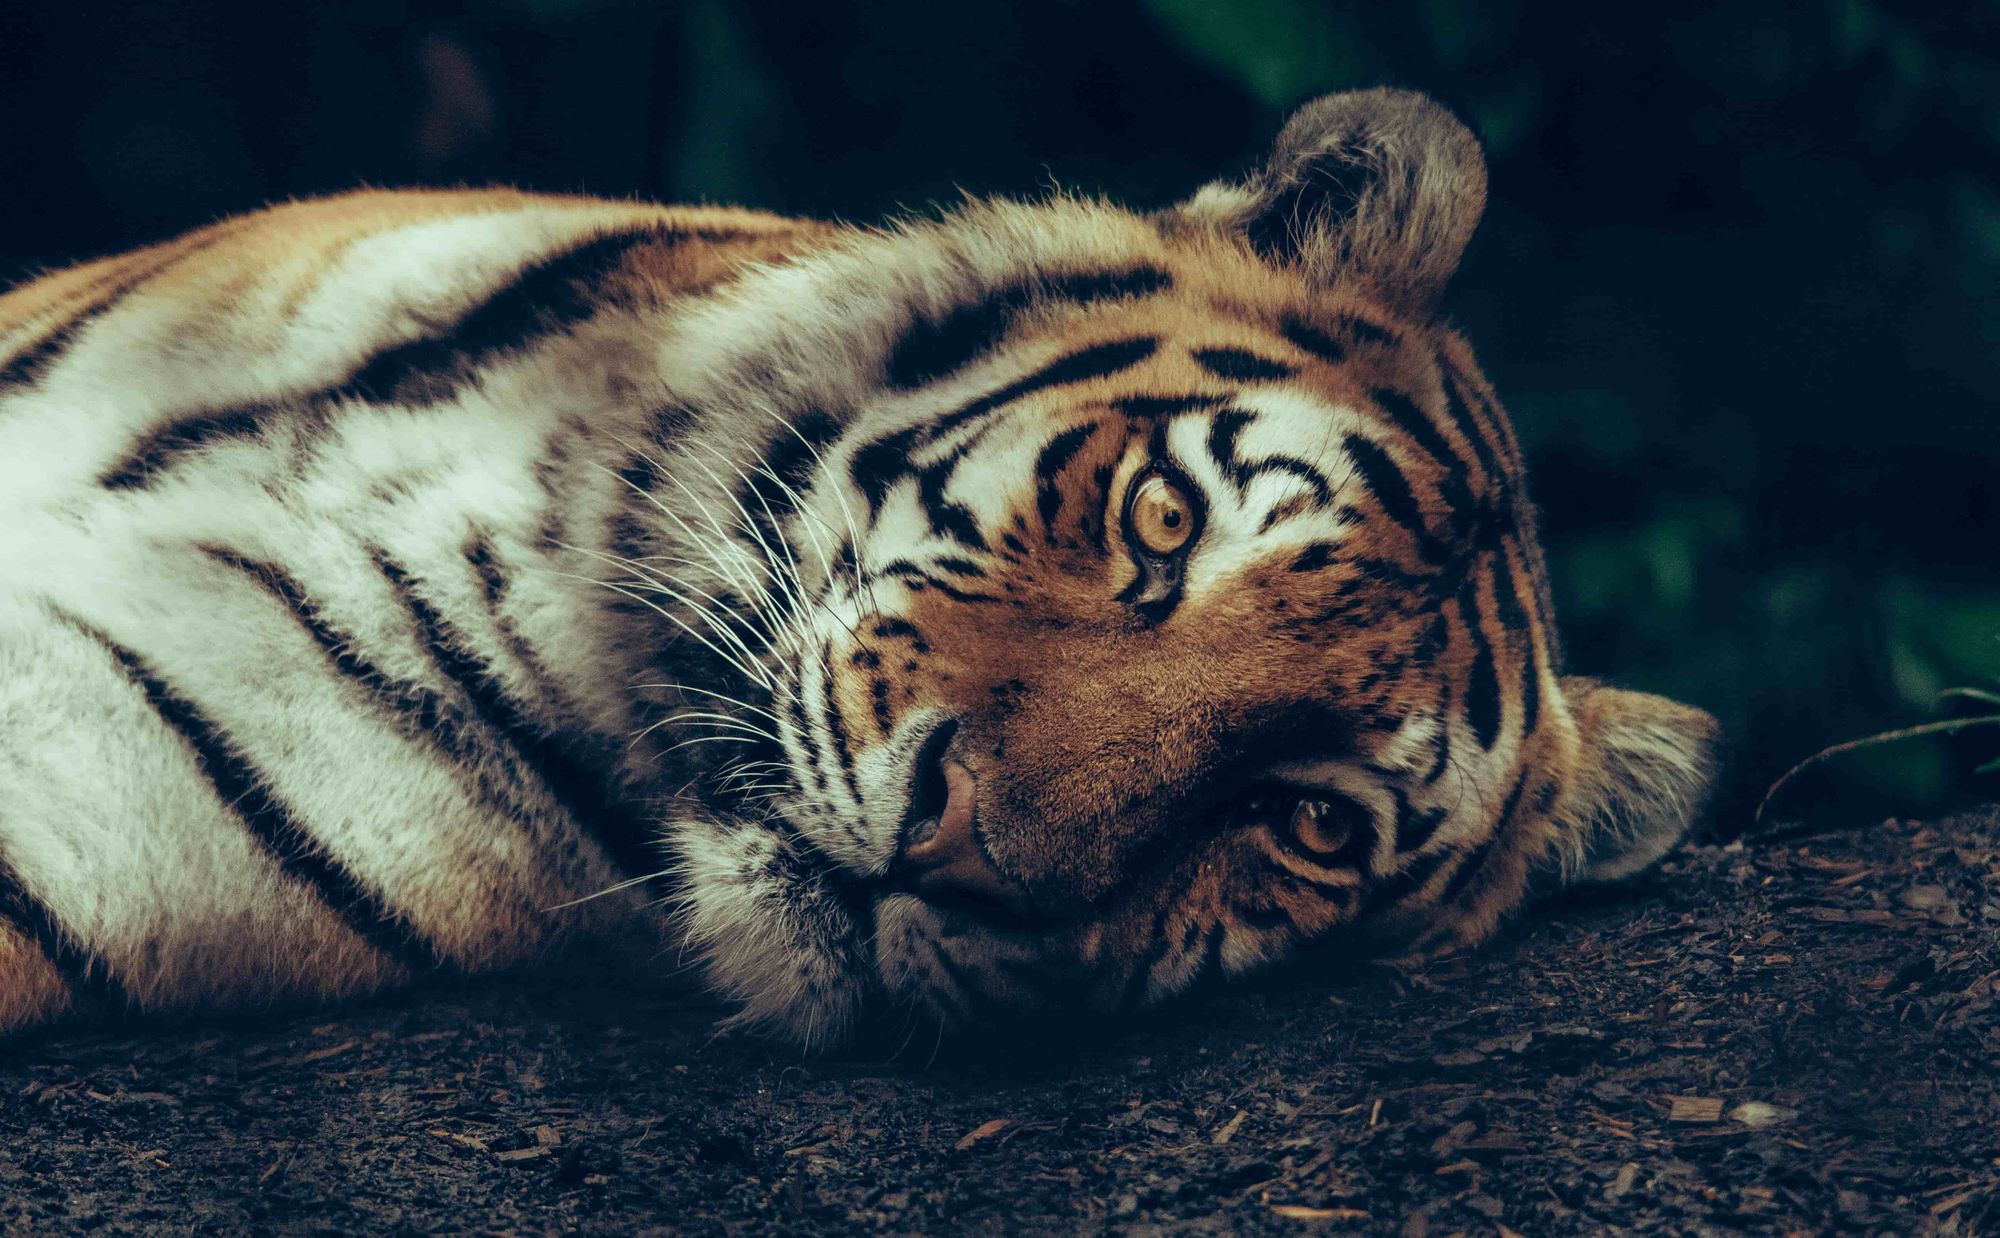 A tiger leaning its head into the ground with a sad face.